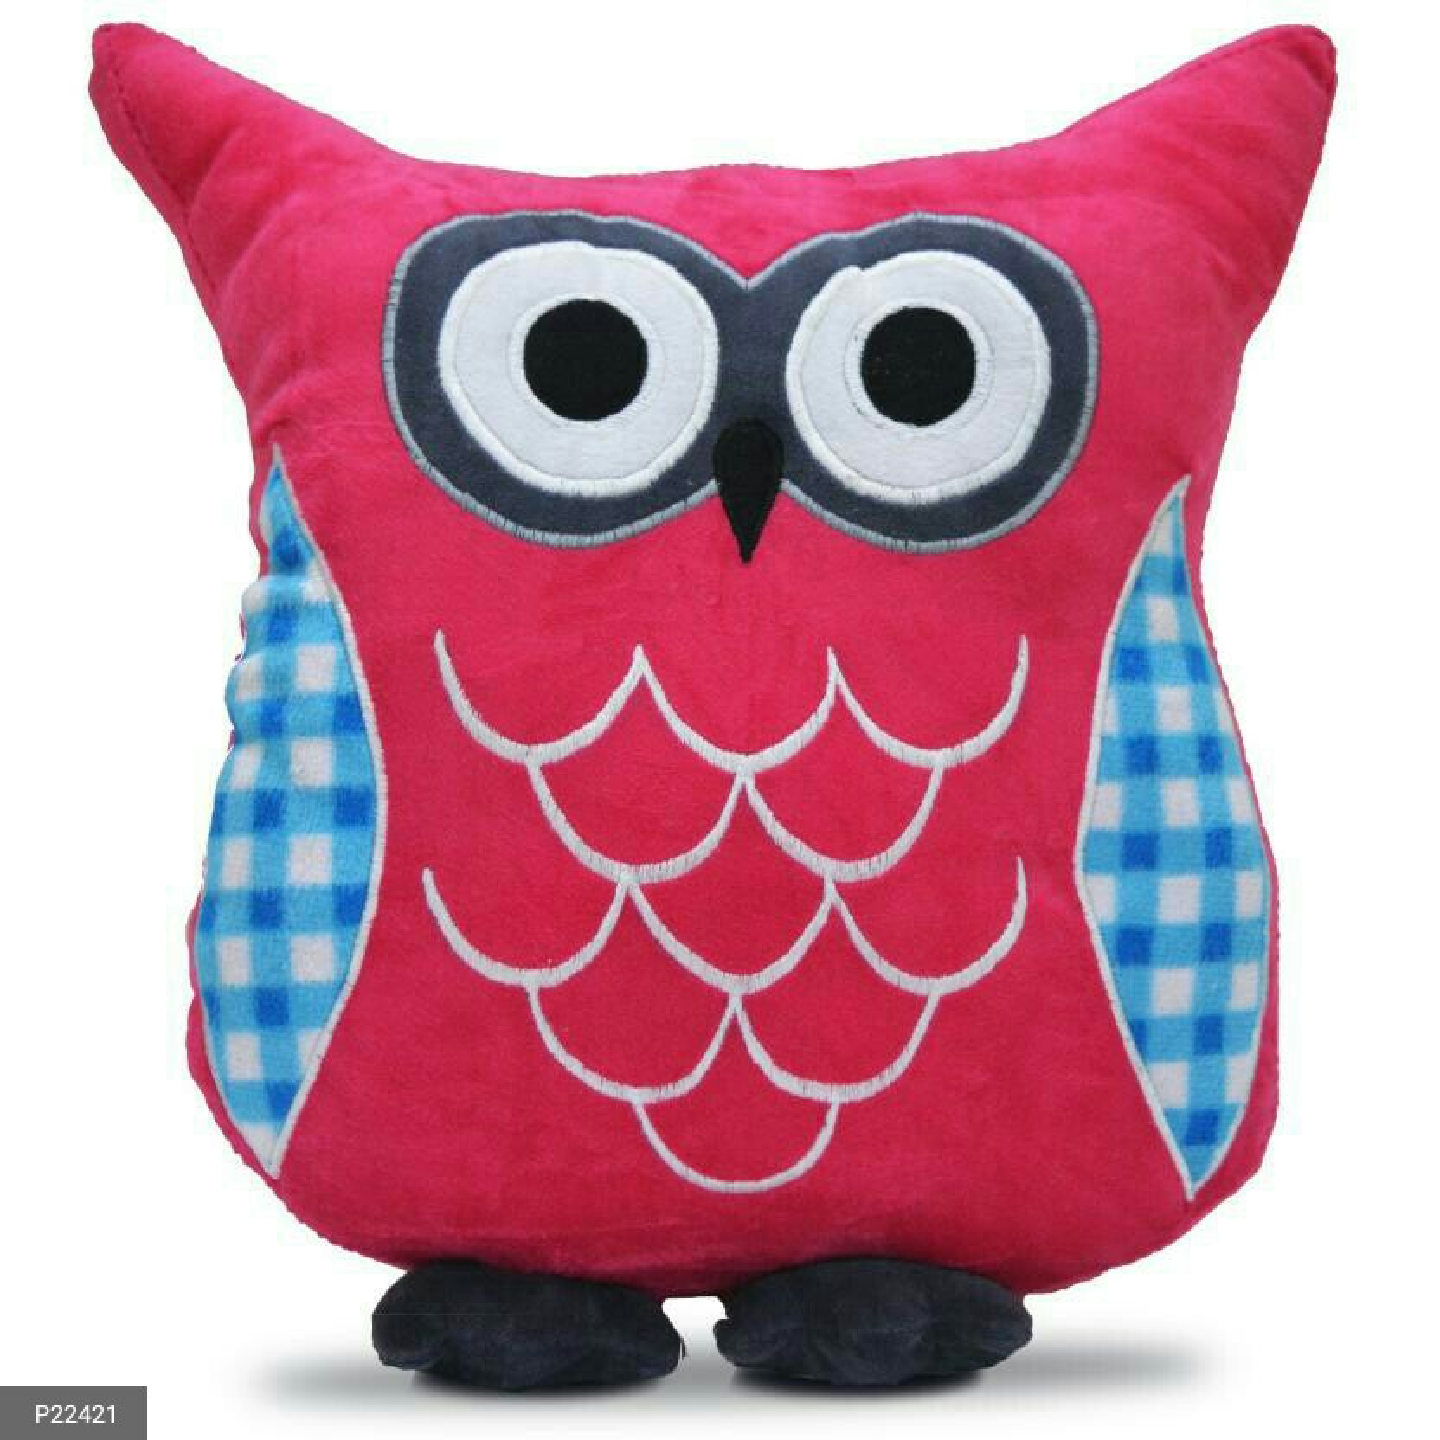 High Quality fiber-filled Owl shaped cushions for Kids and Home Decor !